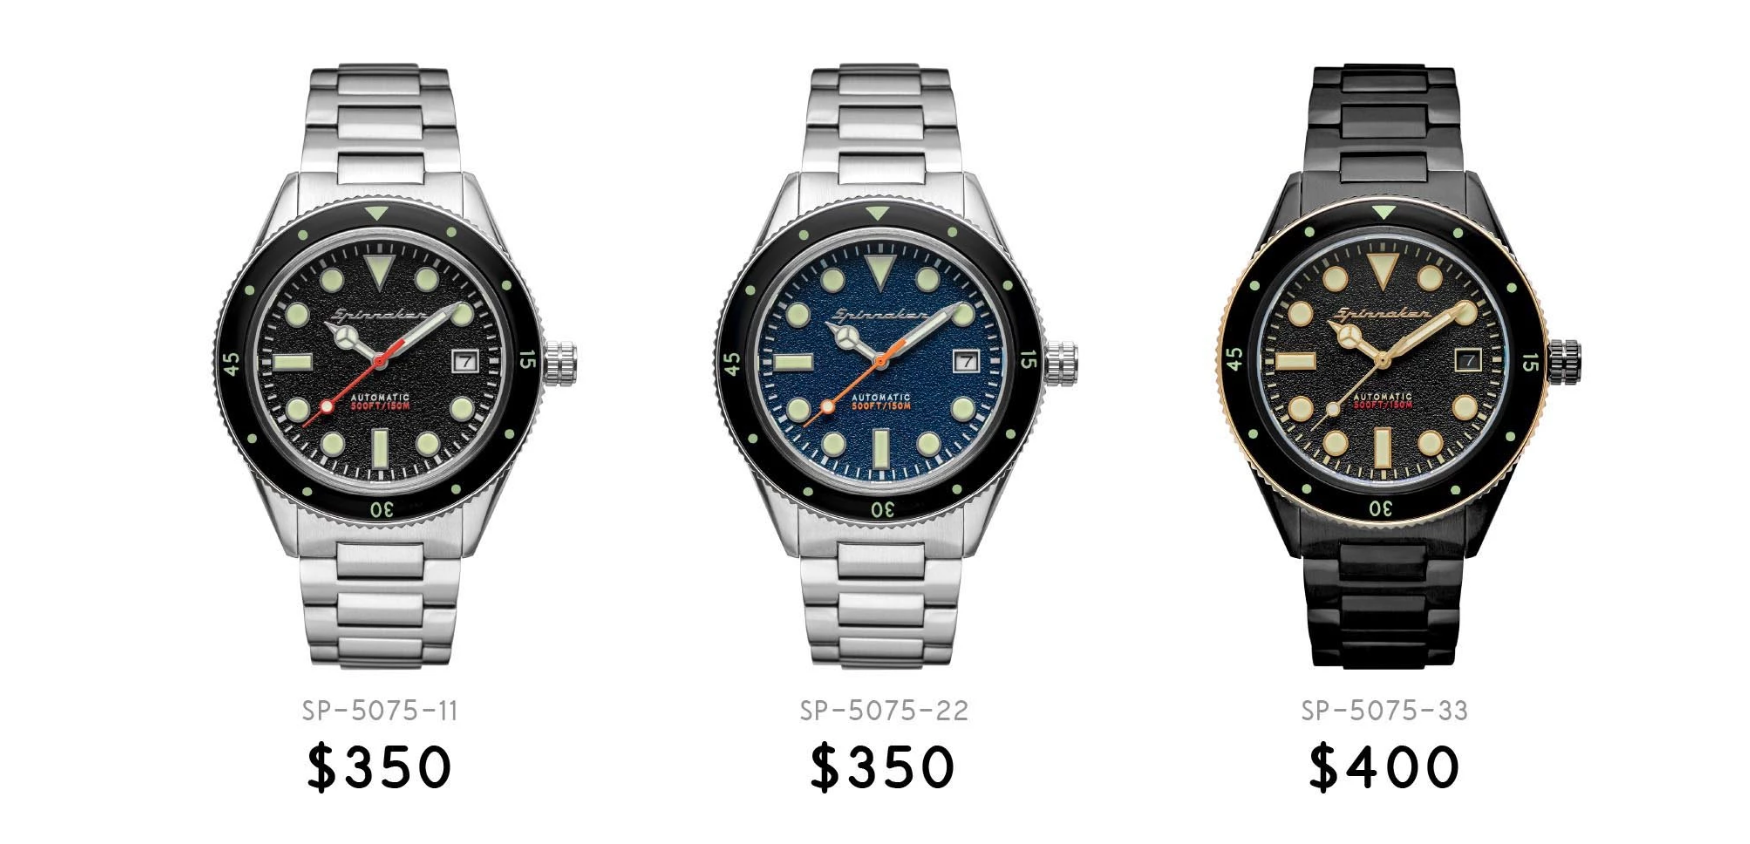 Now available for purchase on Spinnaker-Watches.com